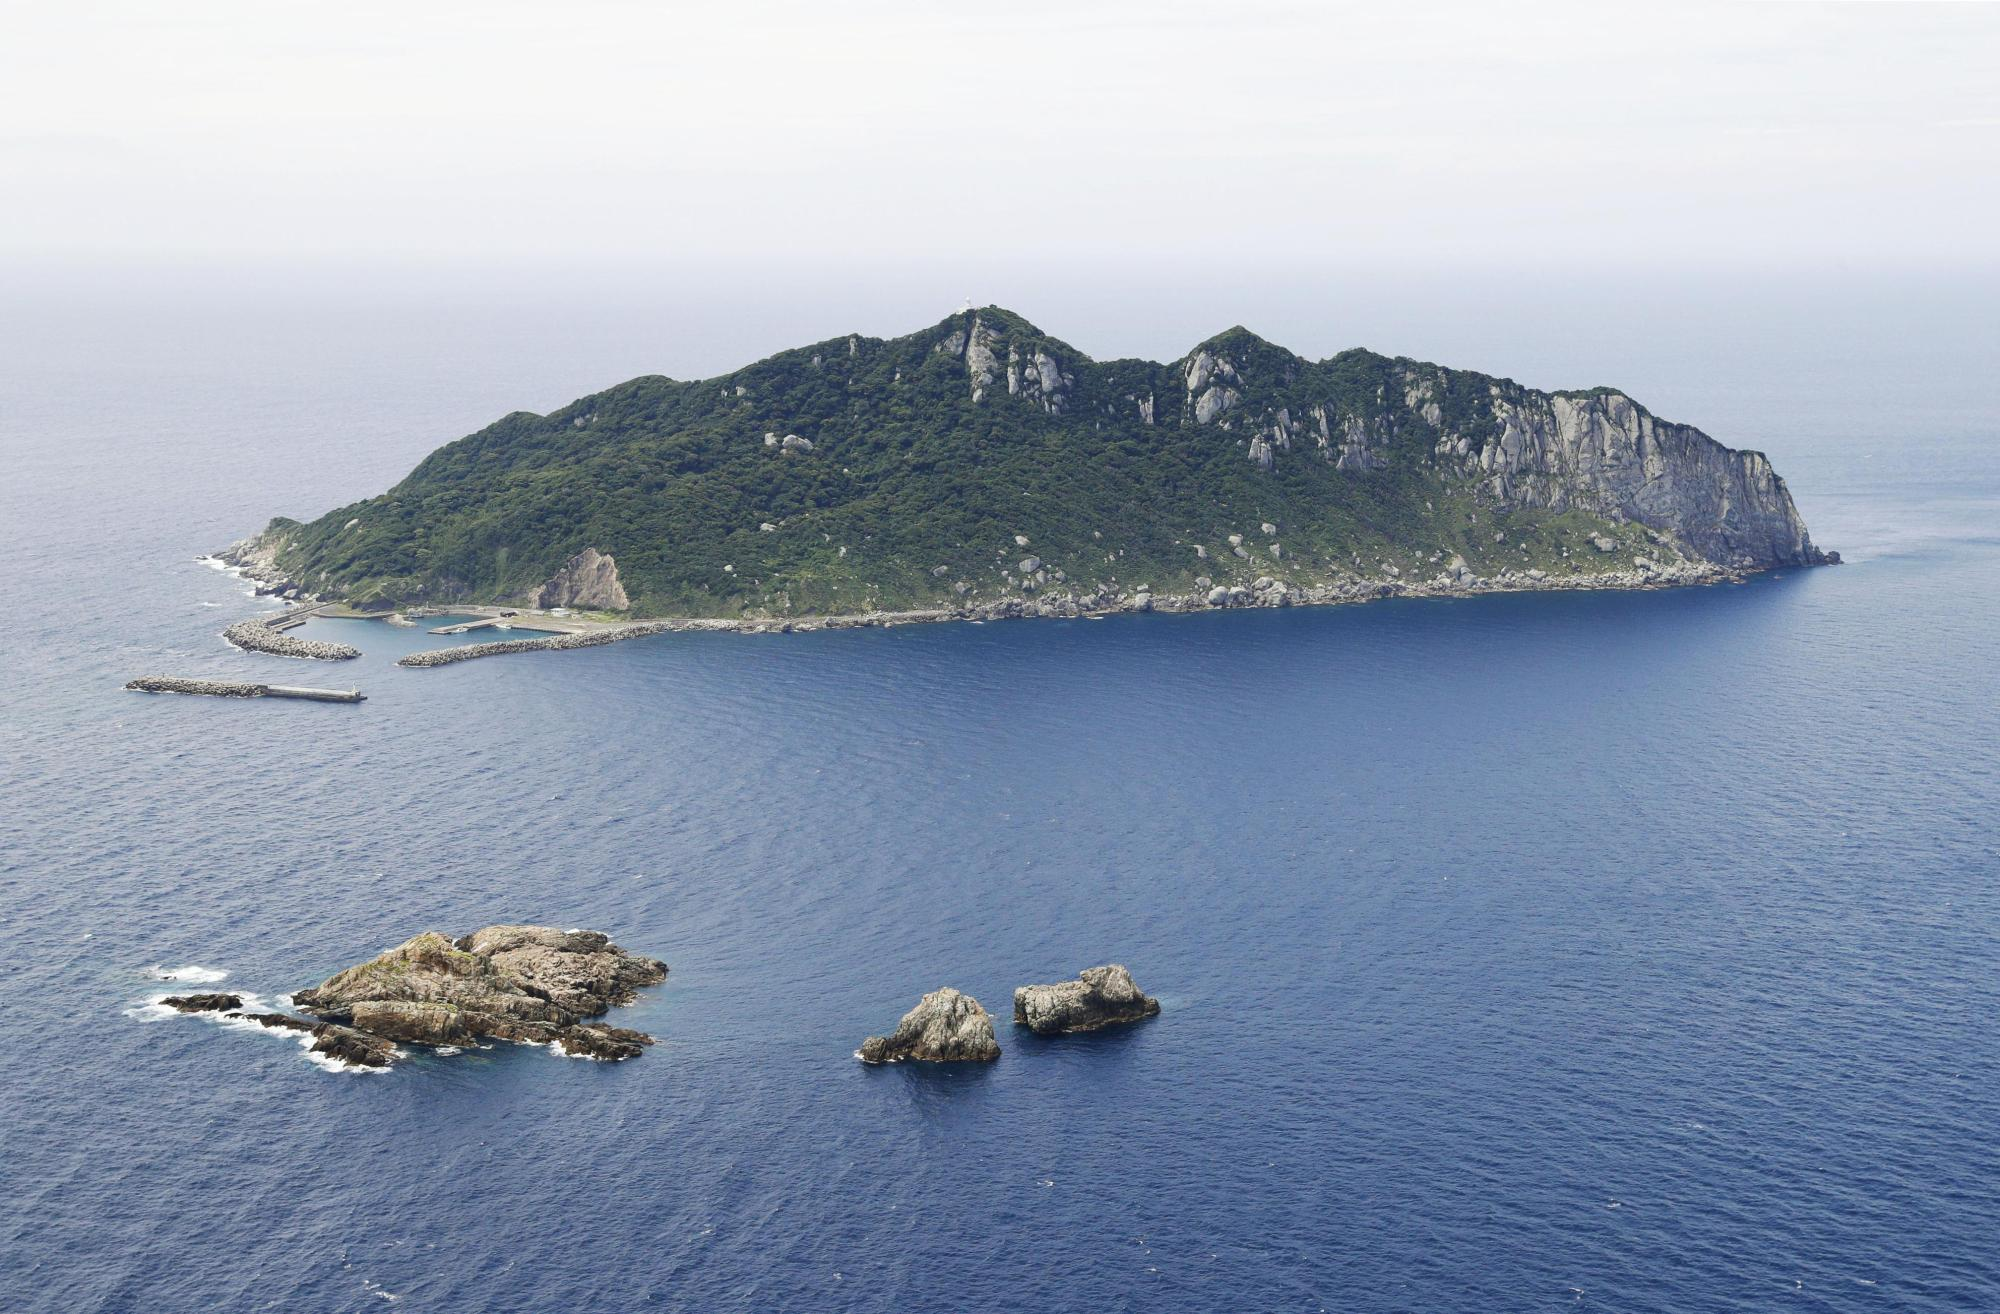 Visitors to be banned from Japan's men-only UNESCO island starting ...